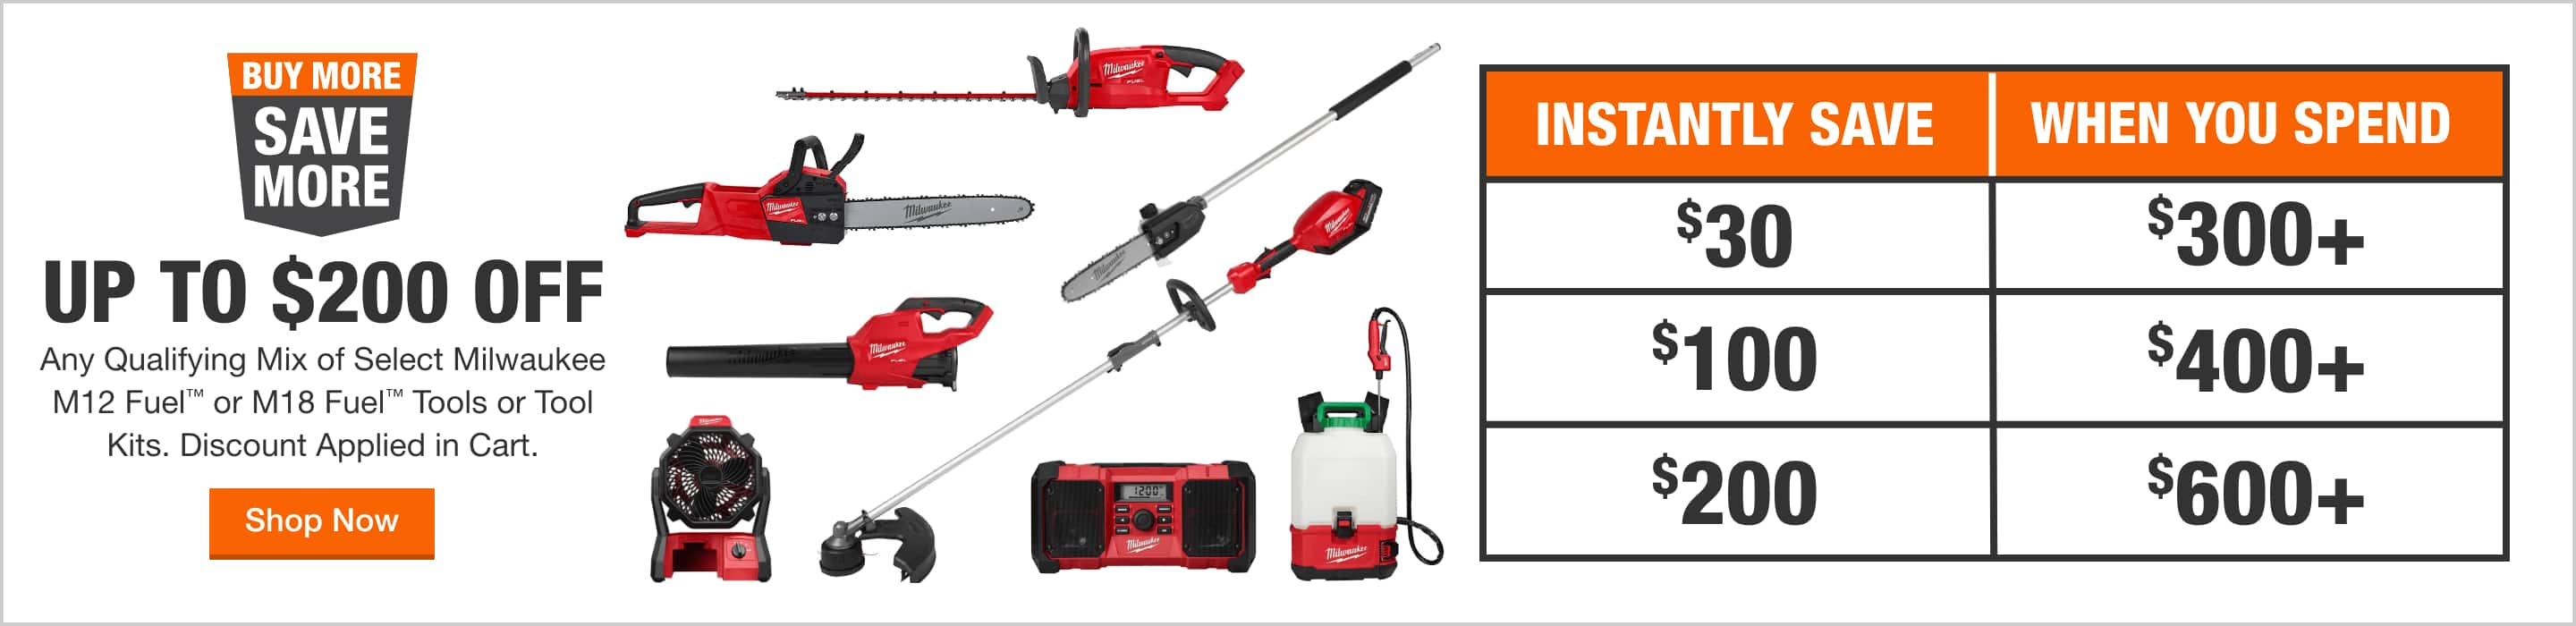 UP TO $200 OFF - Any Qualifying Mix of Select Milwaukee M12 Fuel™ & M18 Fuel™ Tools, System Starter Kits - Discounts Applied in Cart